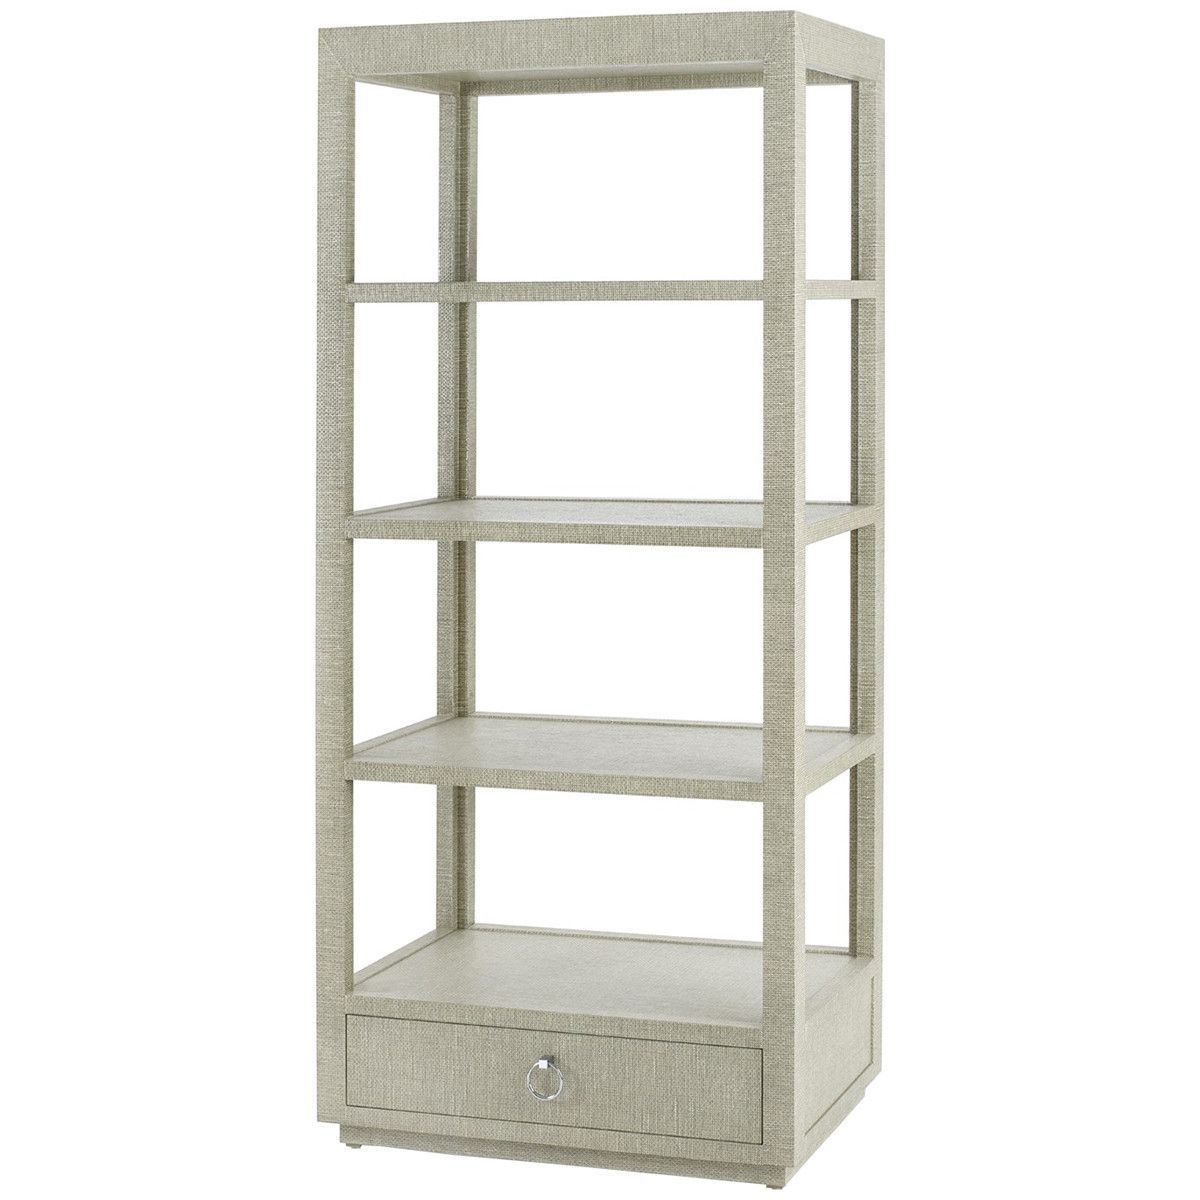 Bungalow 5 Camilla Etagere Shelves Storage Shelves Home